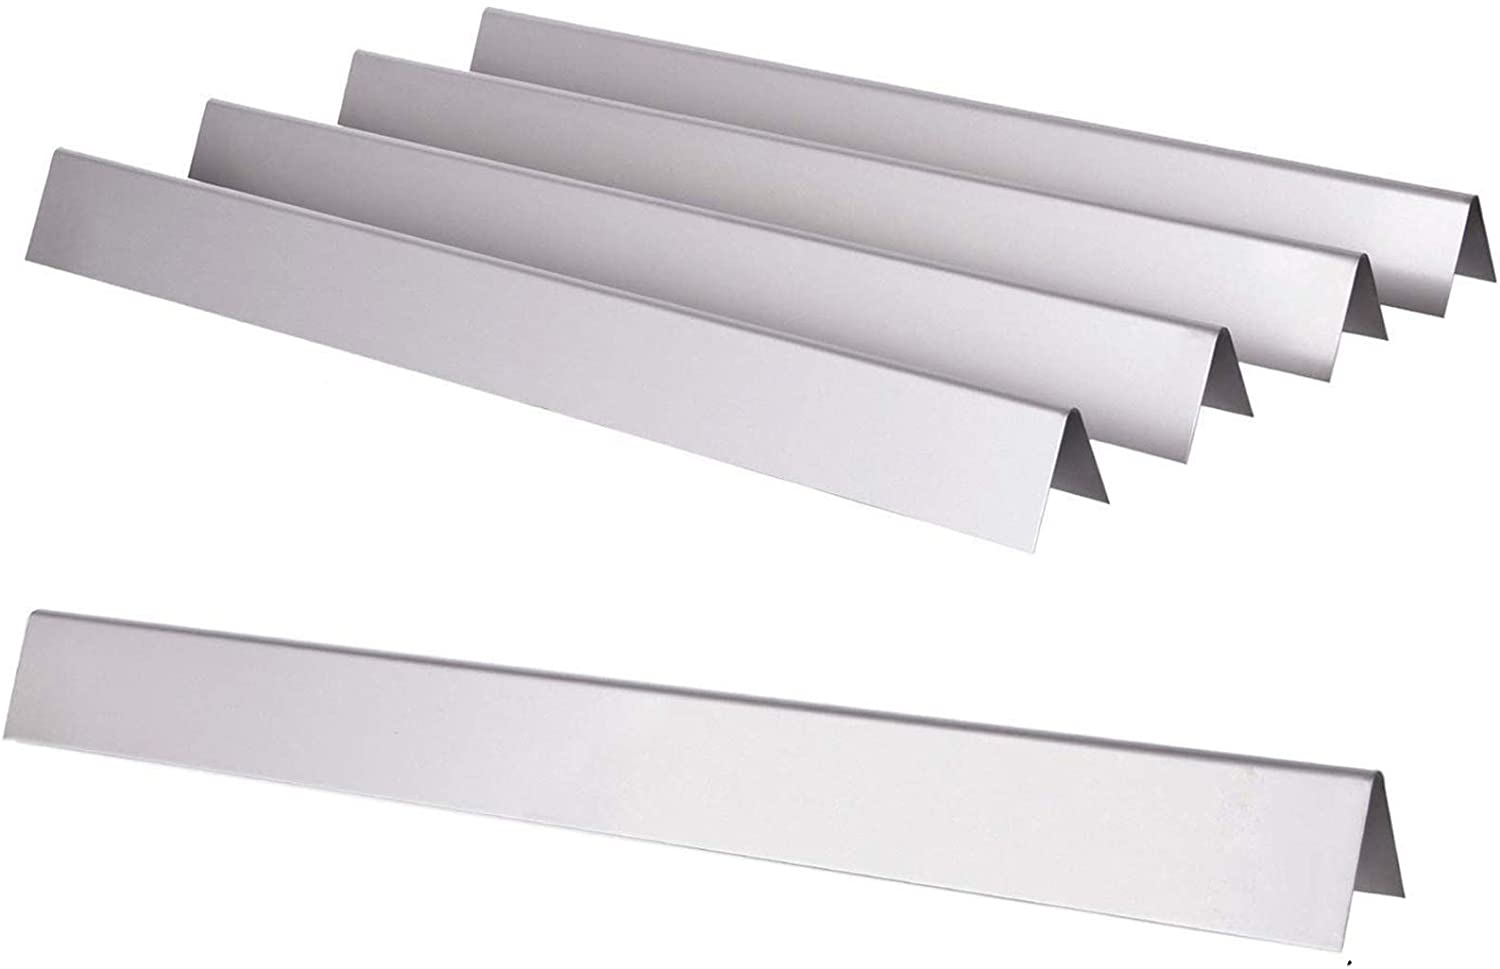 GGC 21.5 inch Flavorizer Bars for Weber 7534 7535, Genesis Silver A, Spirit 500,Spirit 200 Series E/S200 E/S-210 with Side Control Knobs, 5-Pack Stainless Steel Flavor Bars